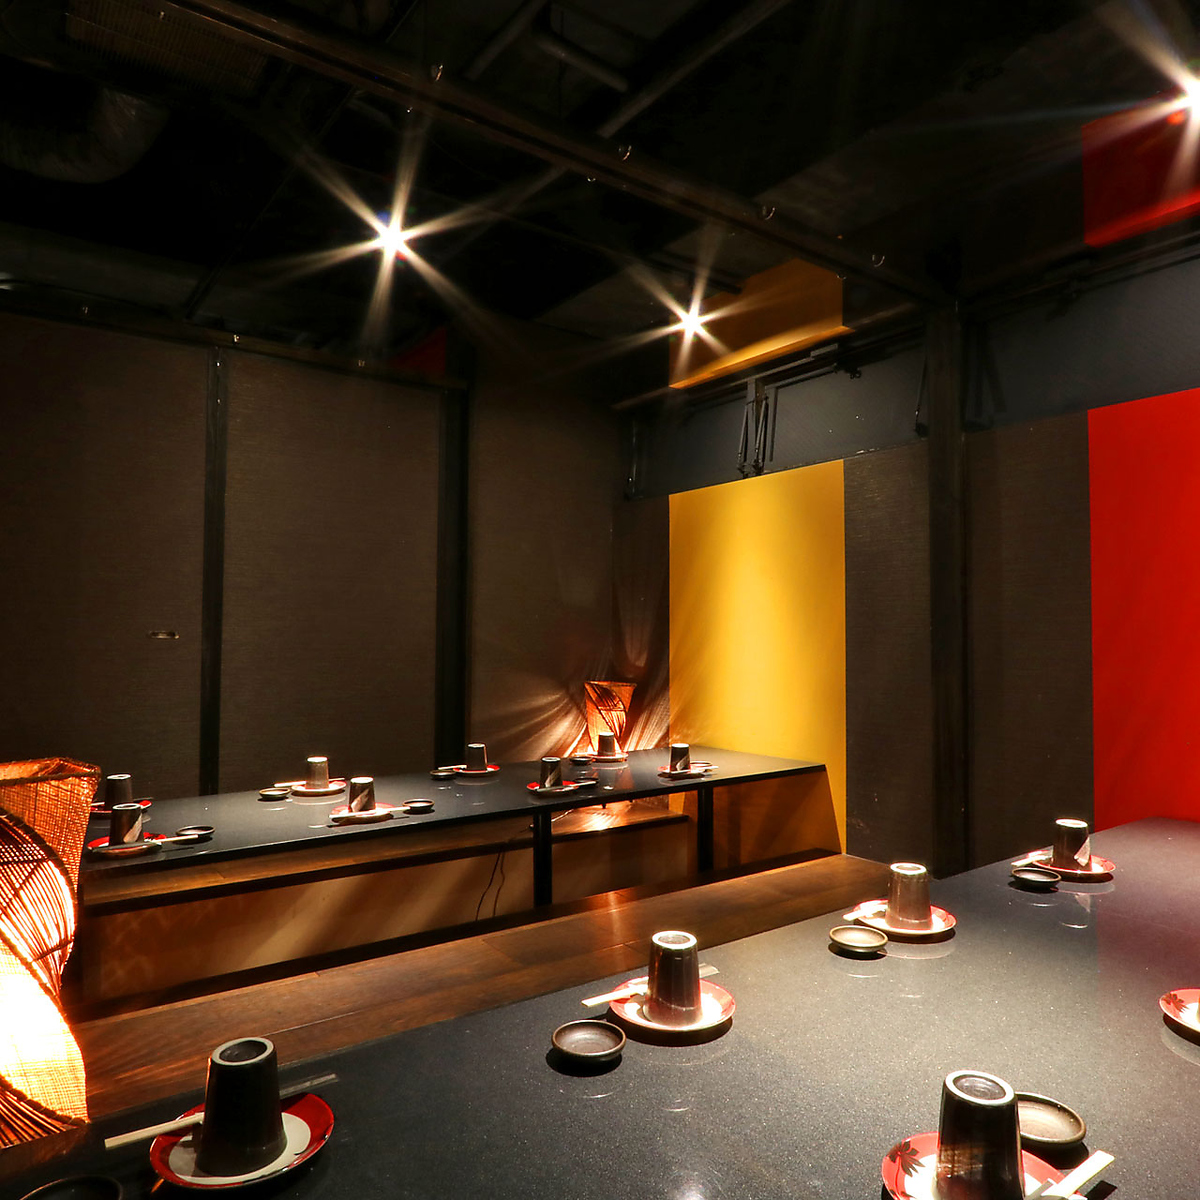 If you are looking for an izakaya with well-rounded drinks-around courses around Kanda, please use the private room Izakaya Kitakku Kanda store ★